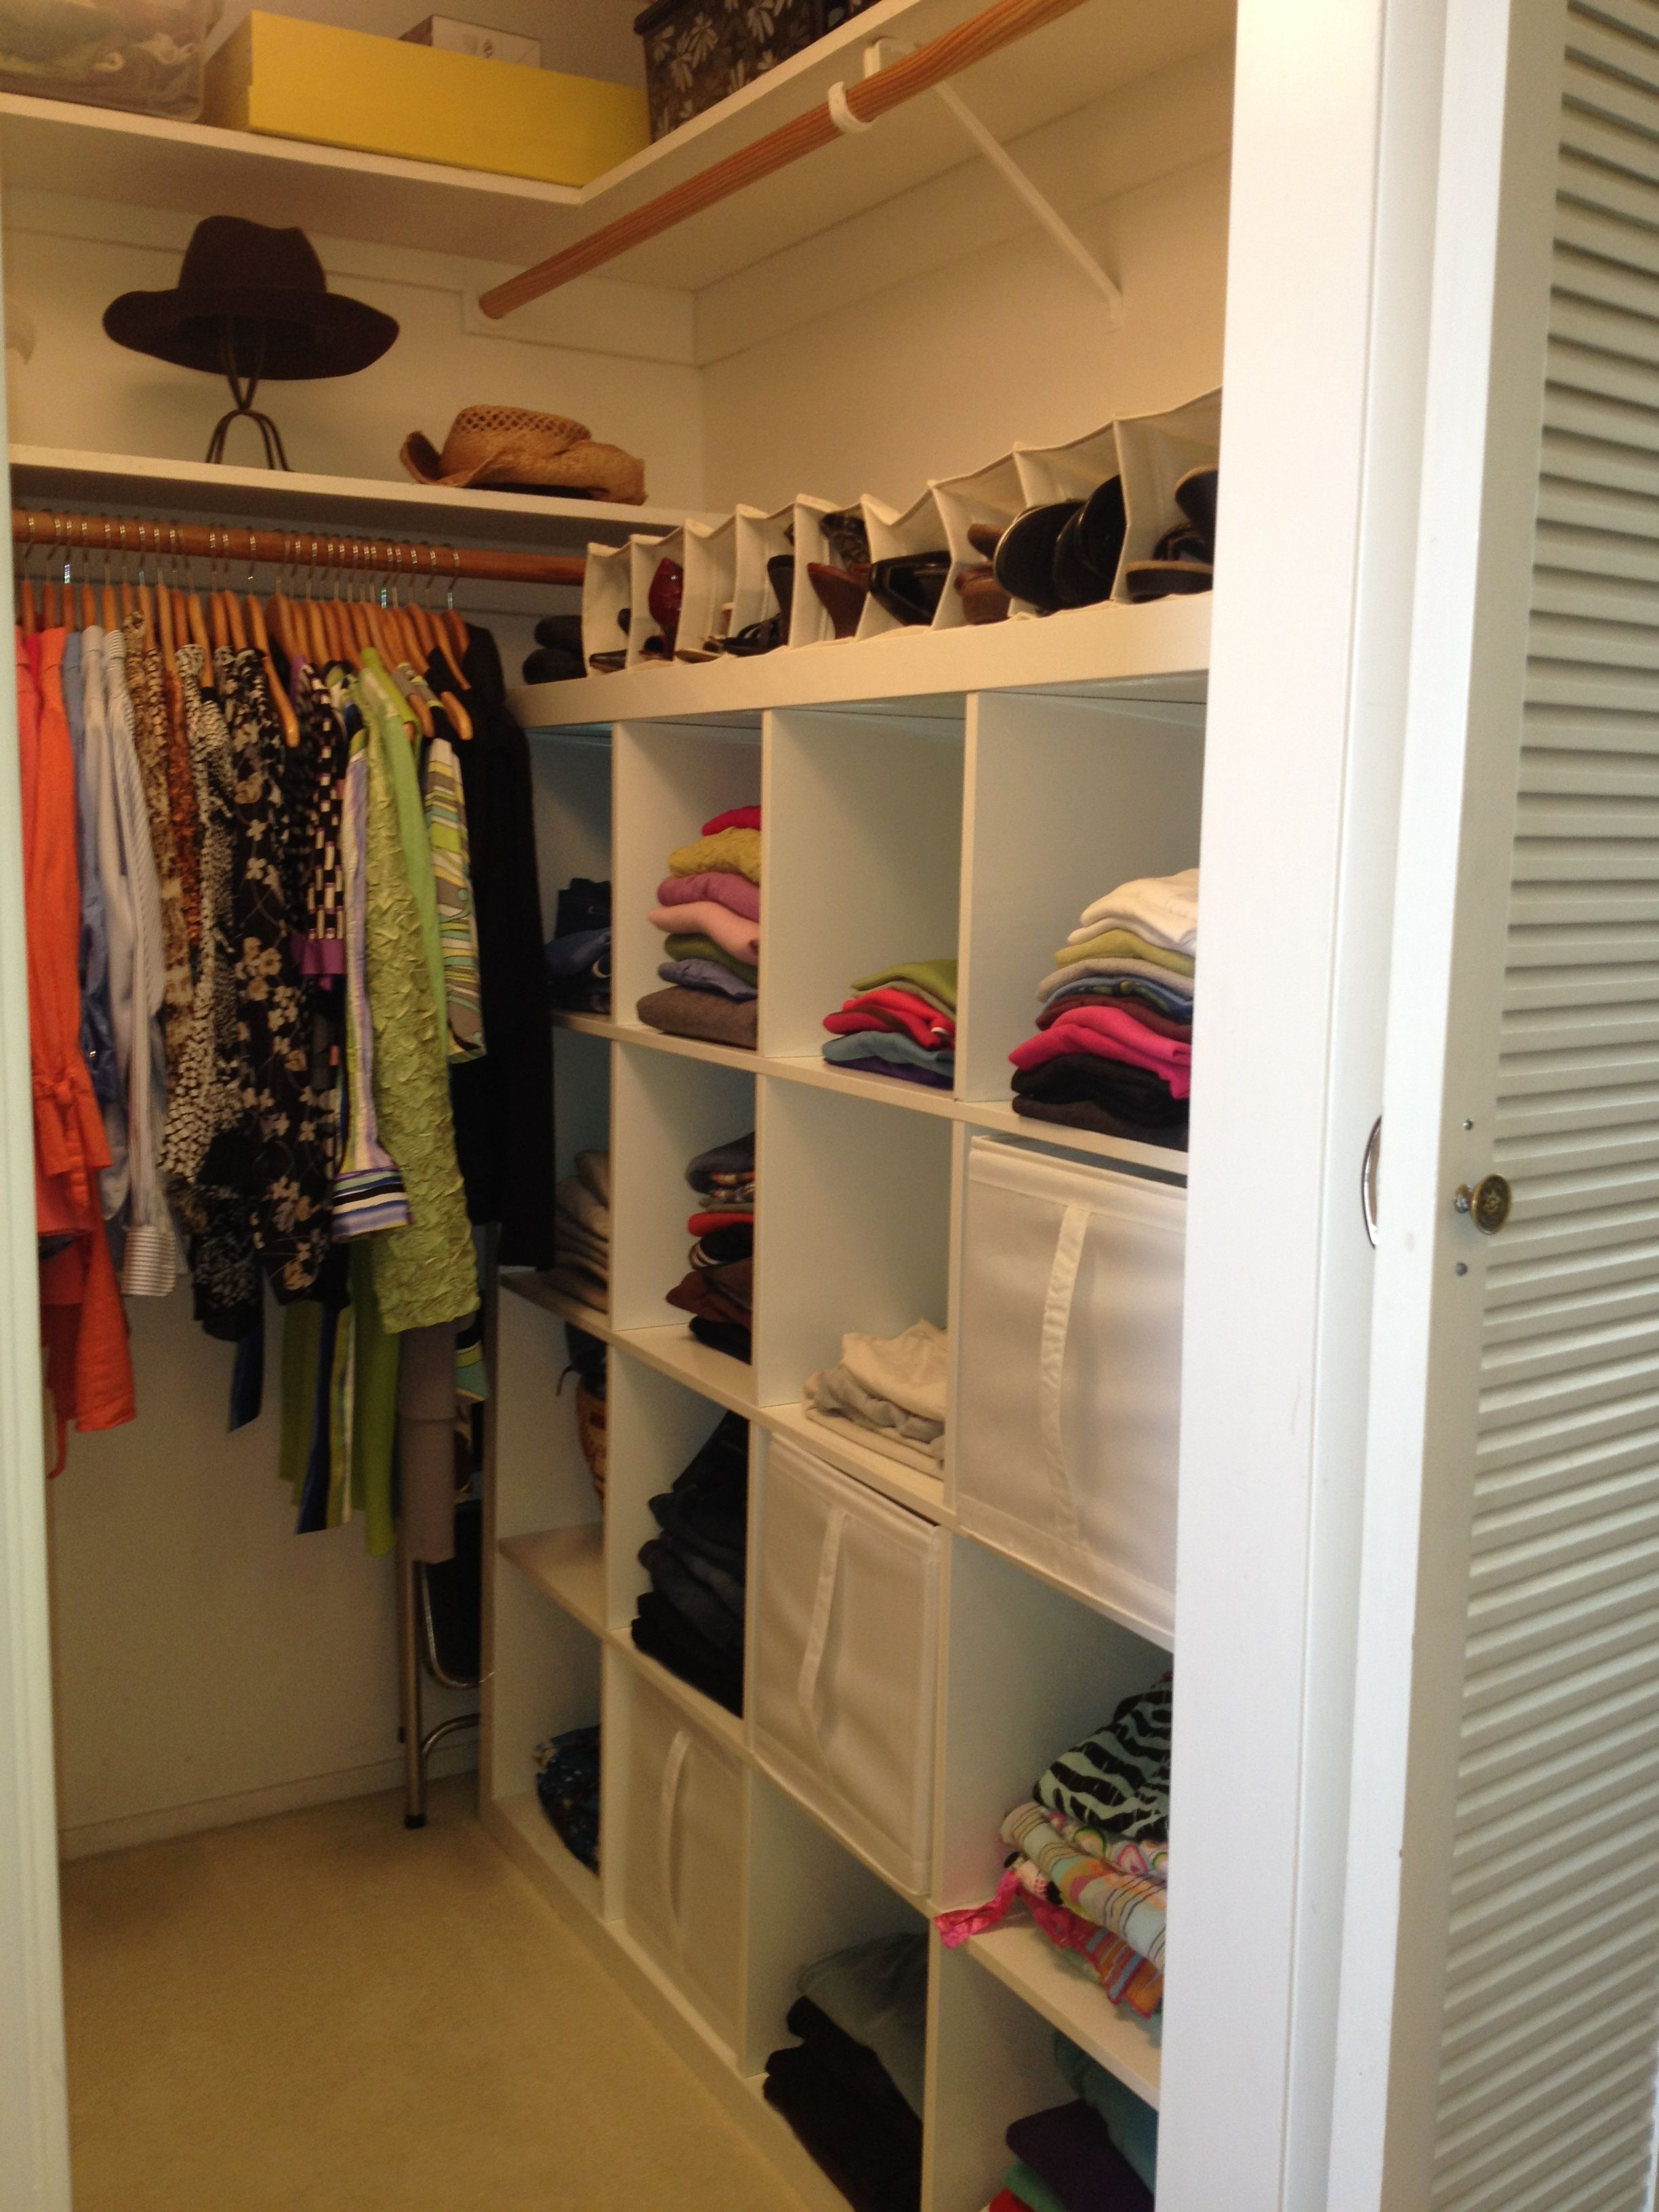 furniture walk in closets ideas small organizer software tool organization storage master door how to closet - Small Walk In Closet Design Ideas